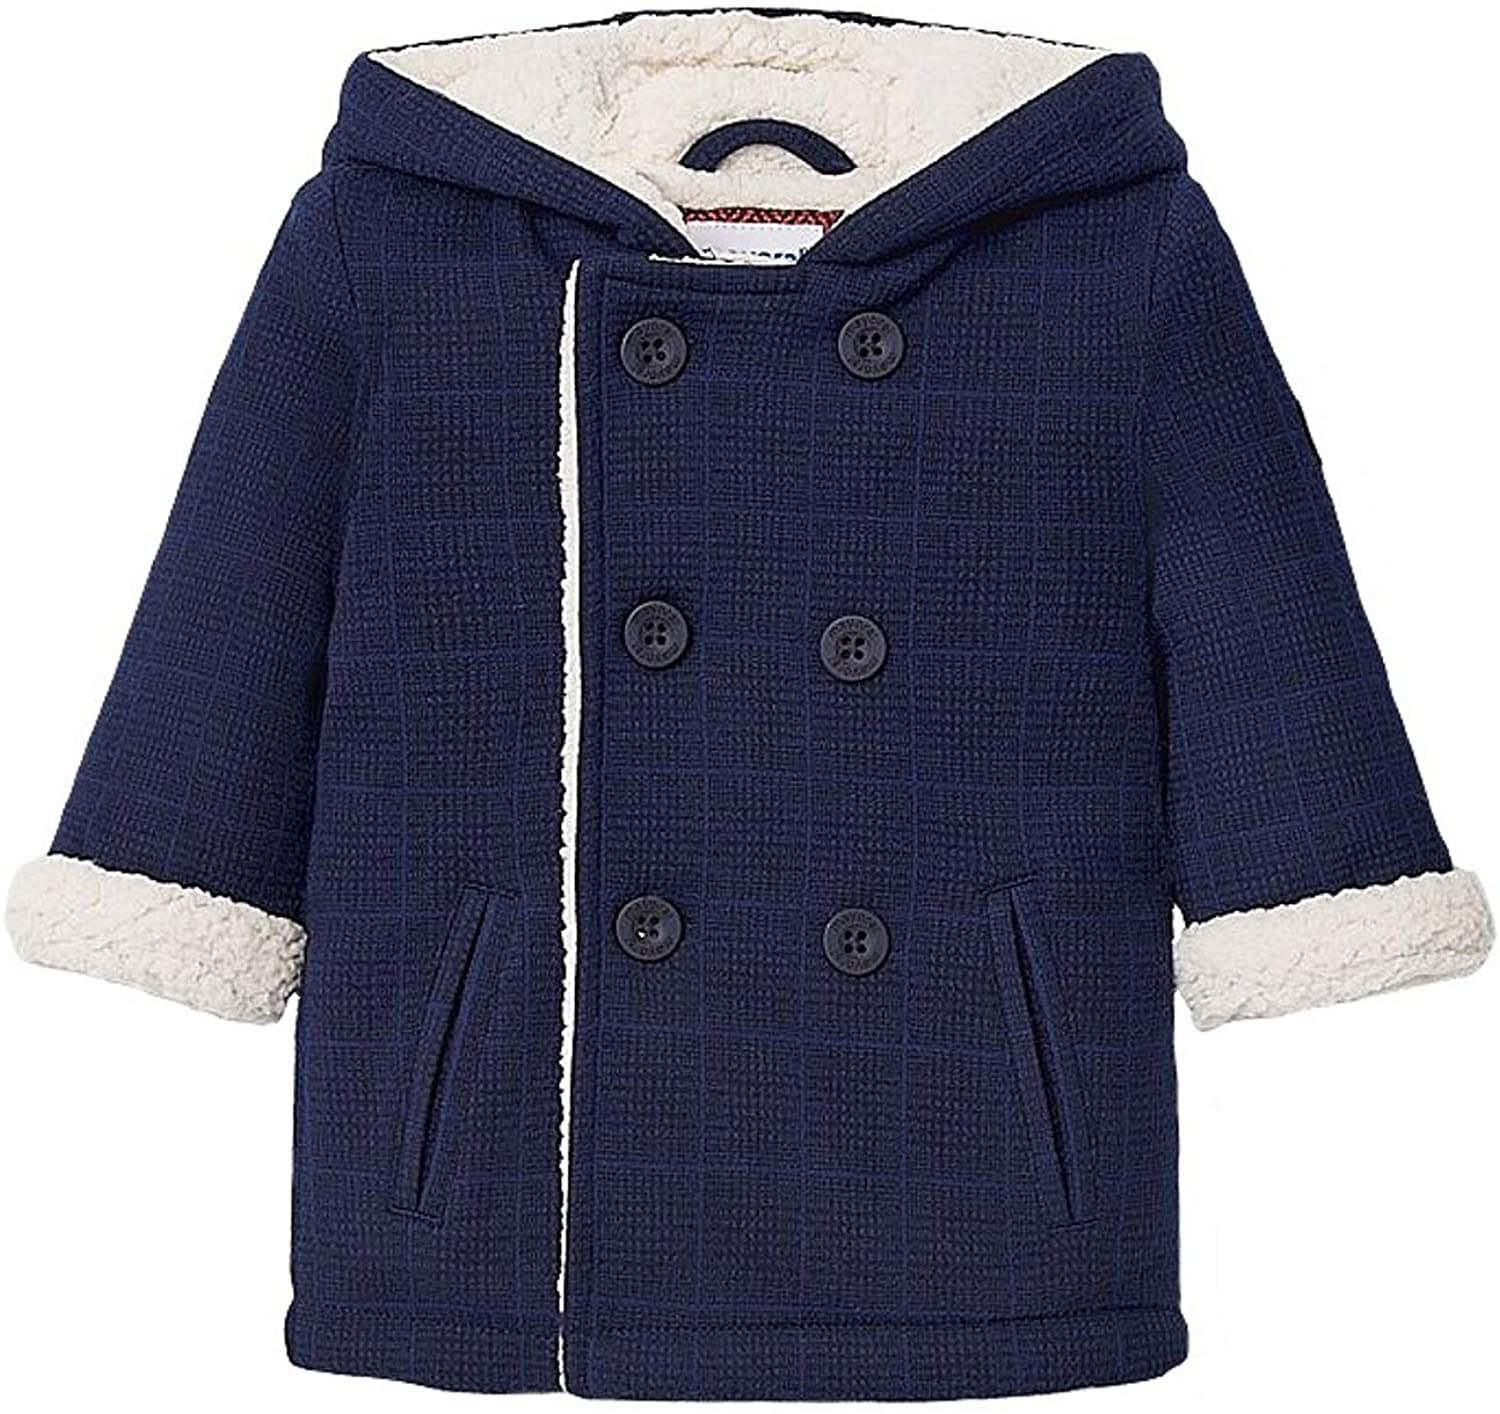 Mayoral - Soft Checkered Coat for Baby-Boys - 2484, Blue